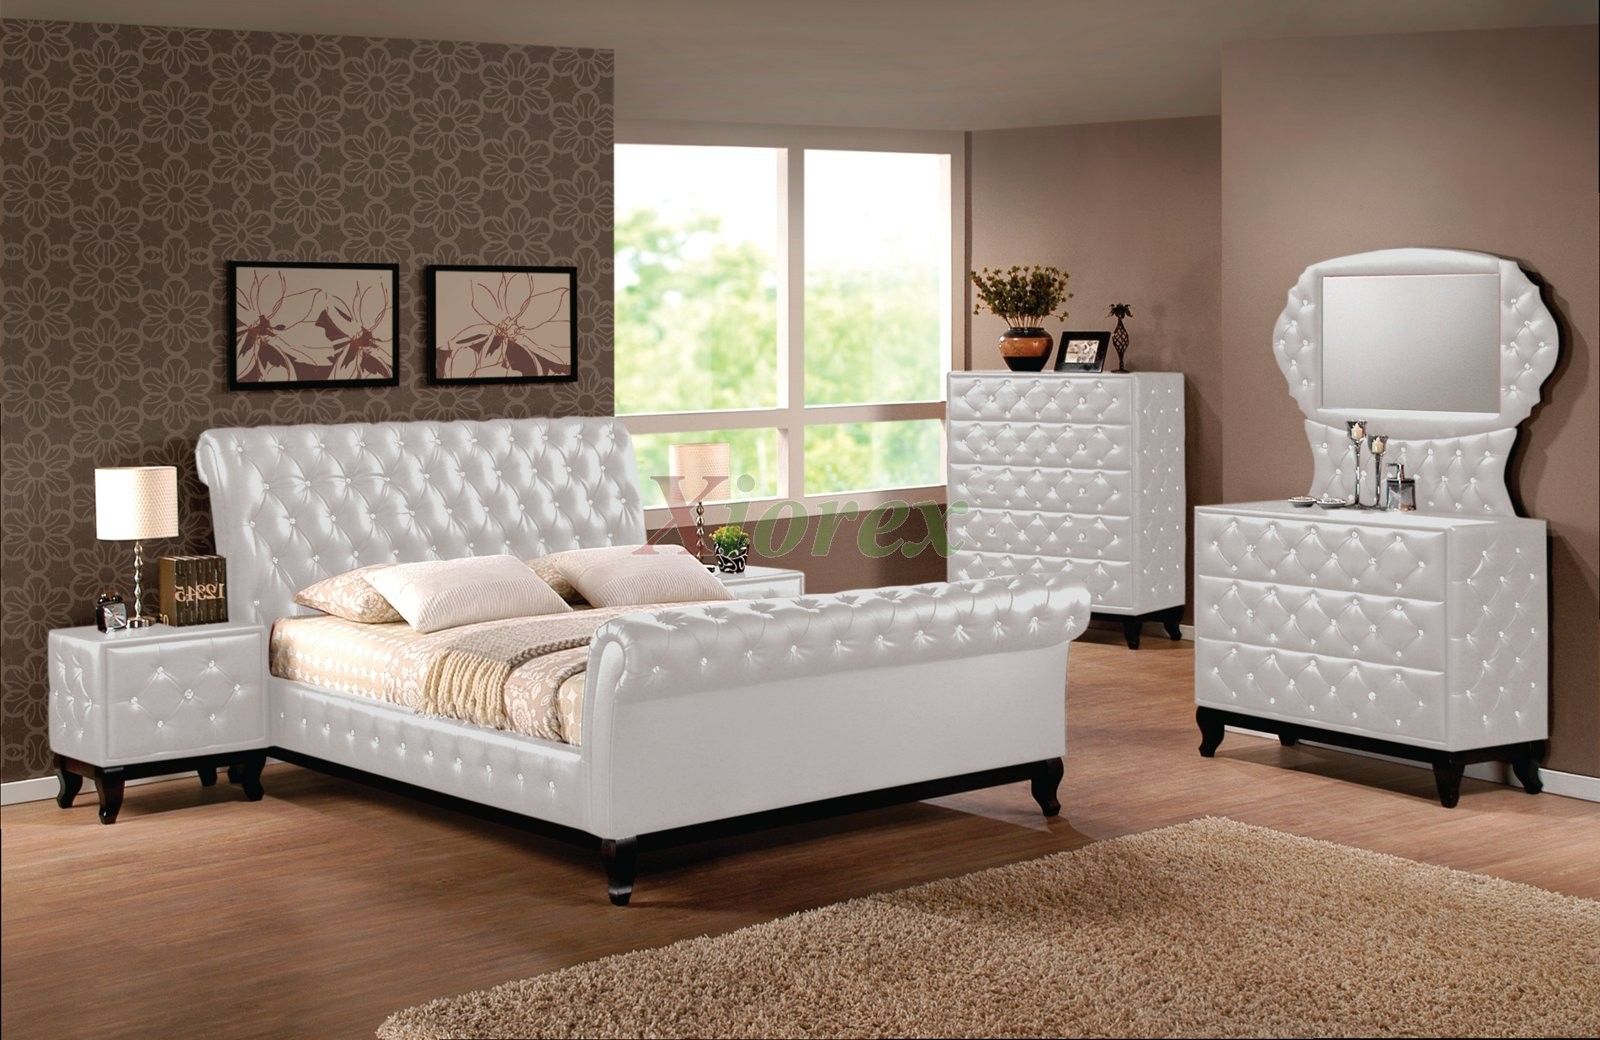 Upholstered sleigh platform bedroom furniture set 151 xiorex for Furniture bedroom furniture